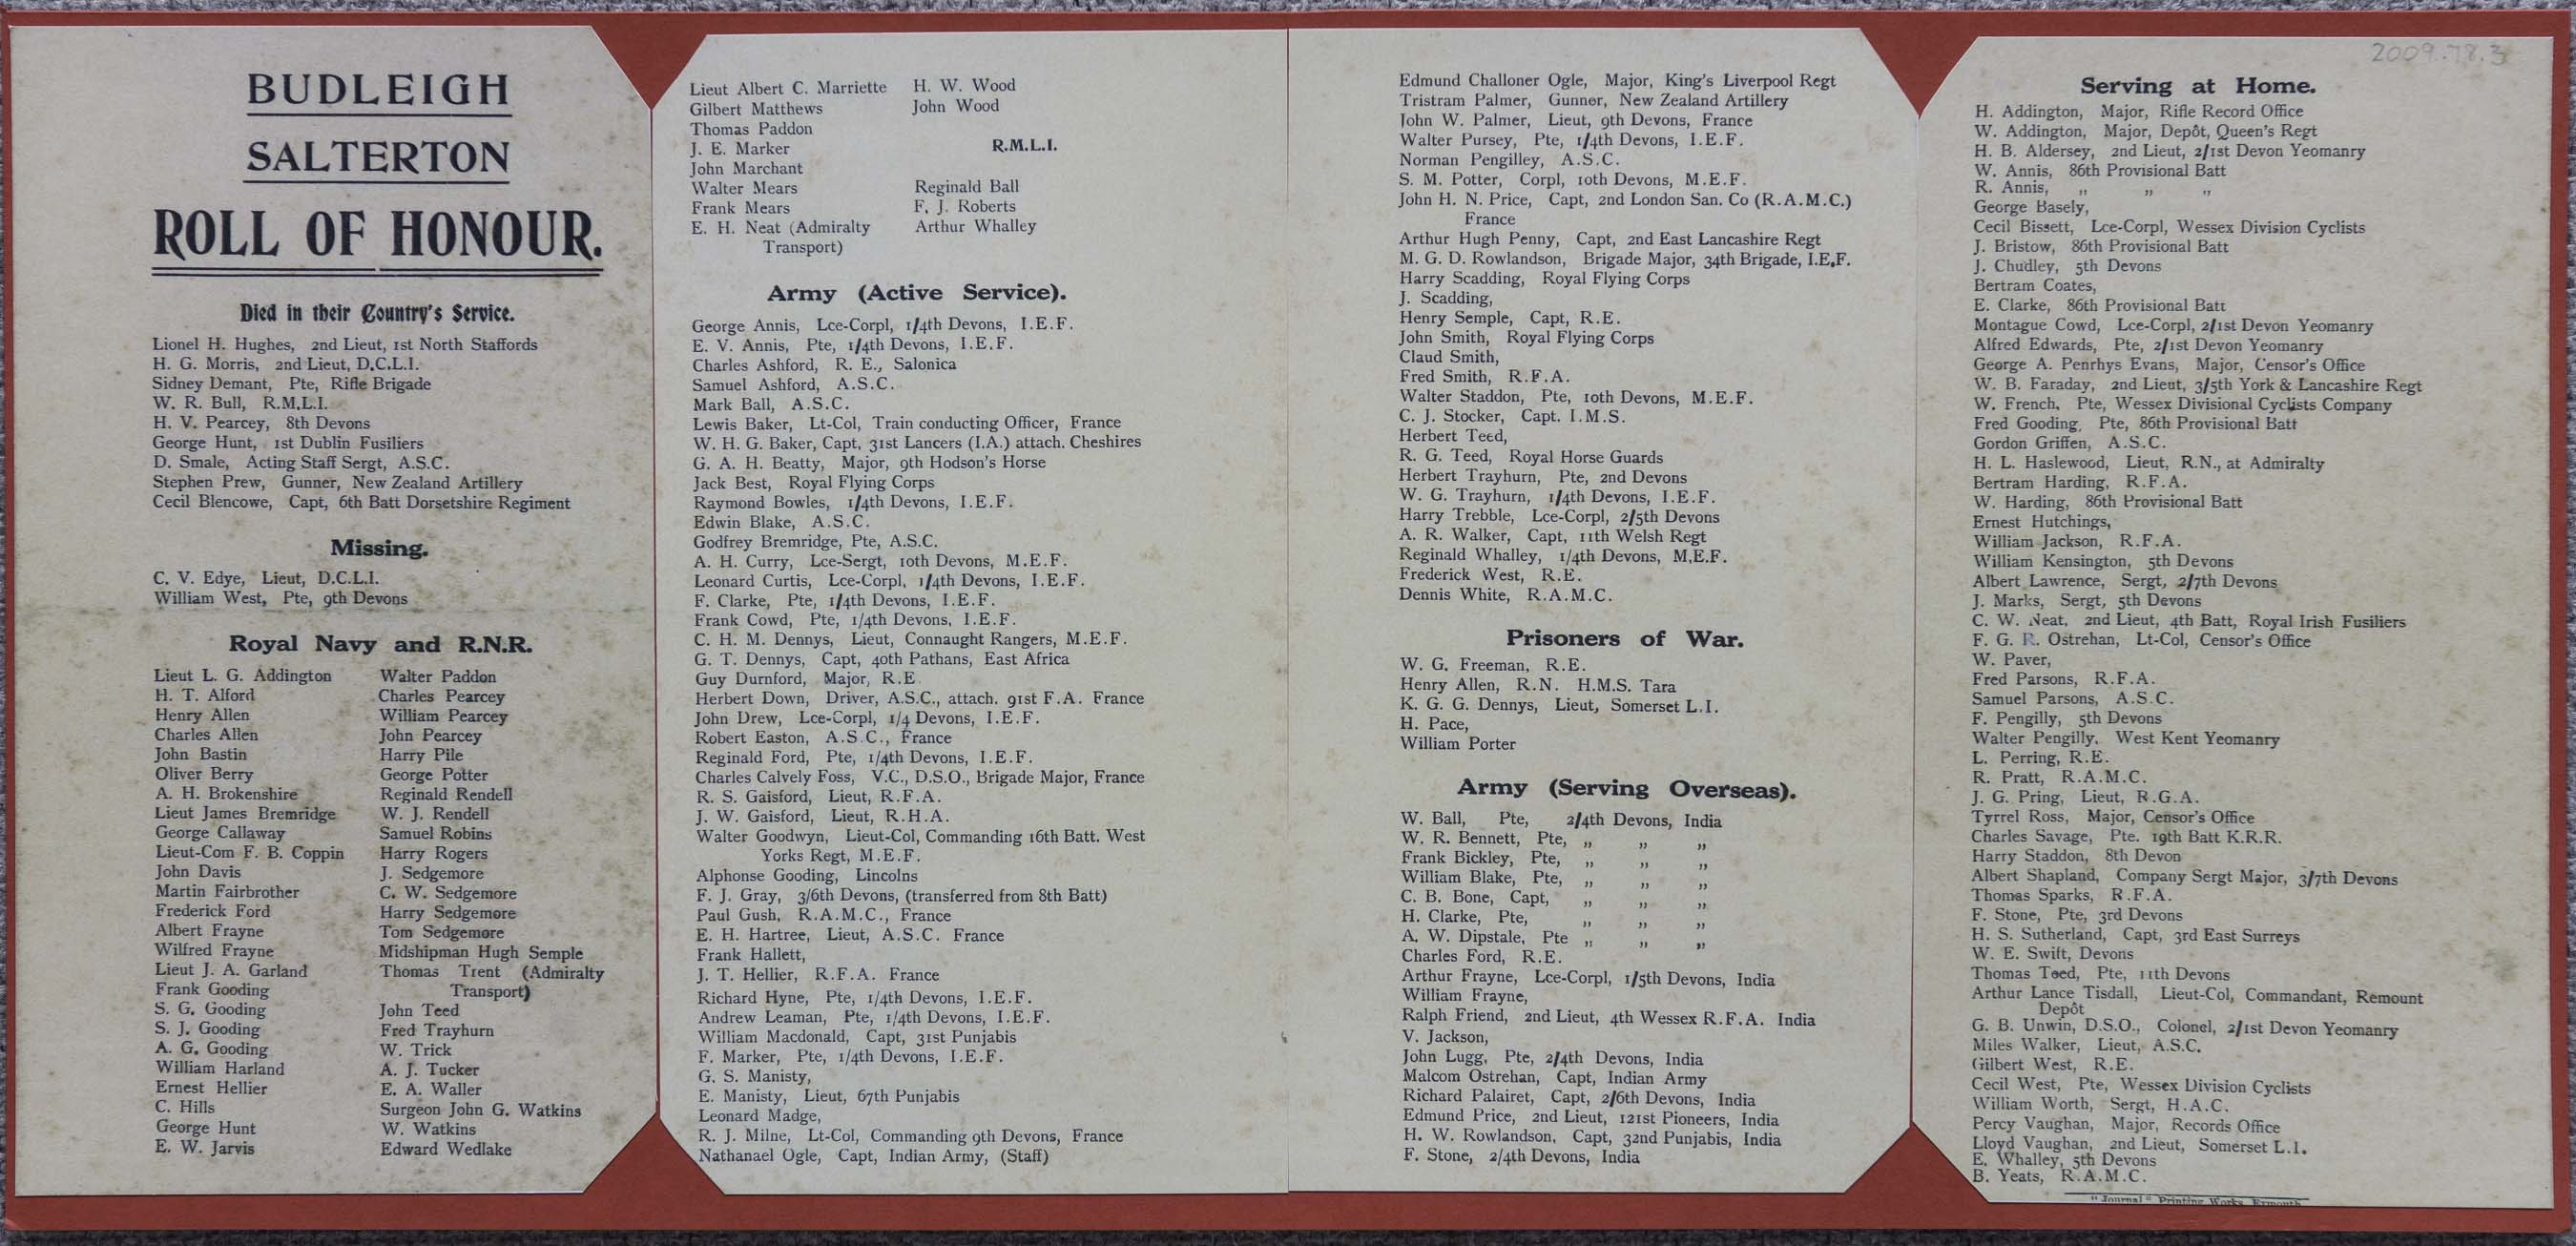 Budleigh Salterton's Roll of Honour